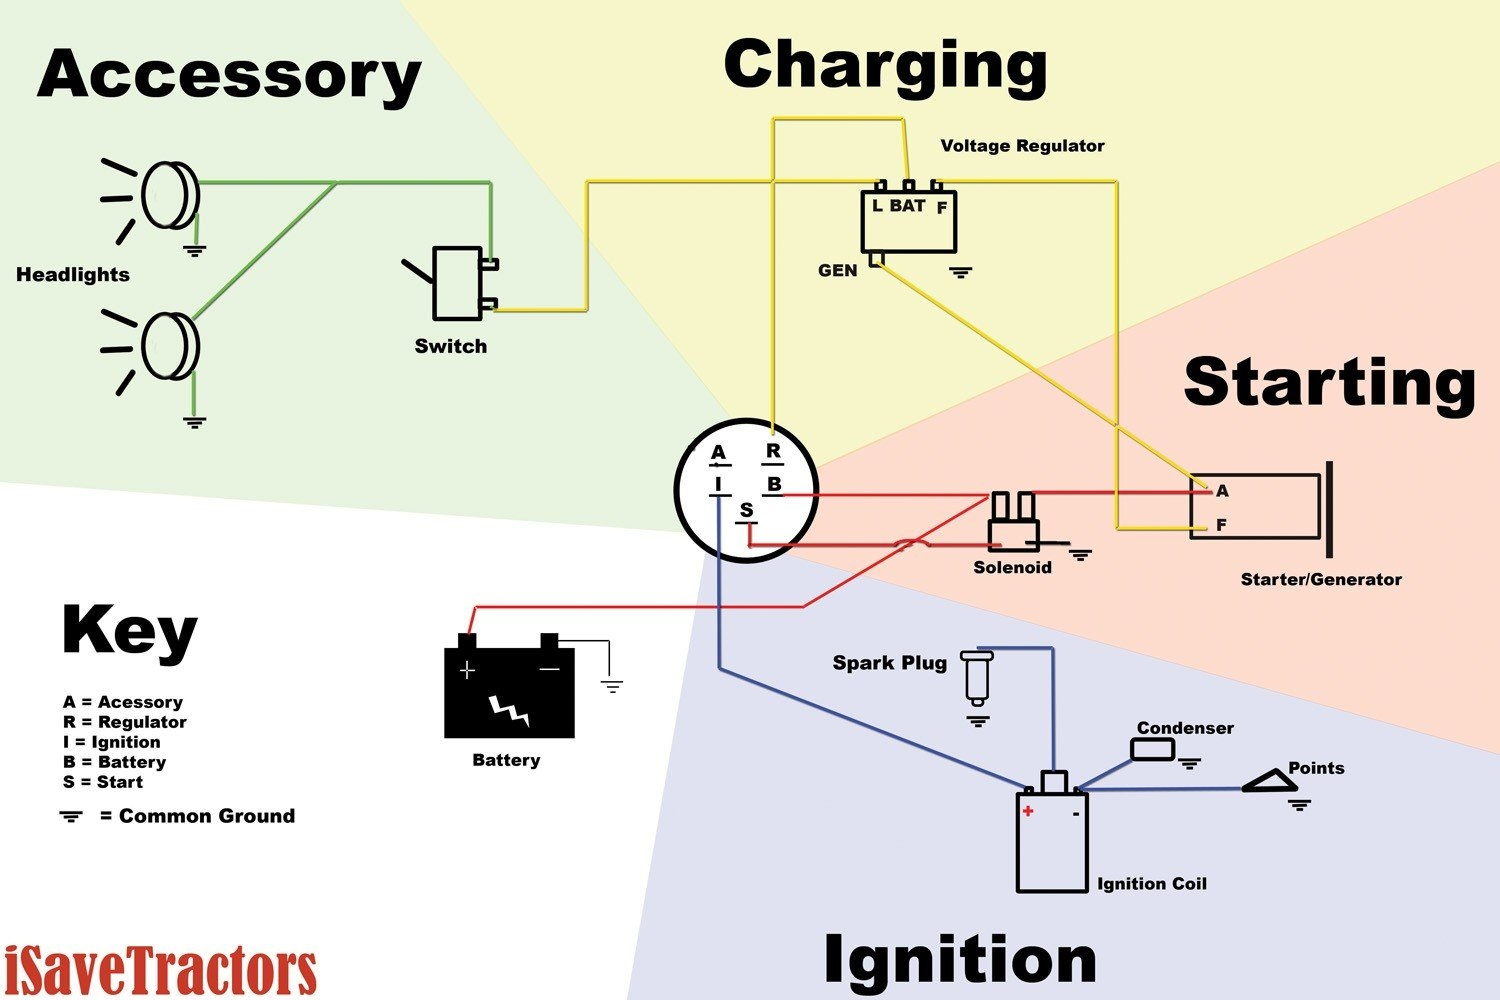 5 Prong Ignition Switch Diagram - Wiring Diagrams Hubs - 5 Prong Ignition Switch Wiring Diagram